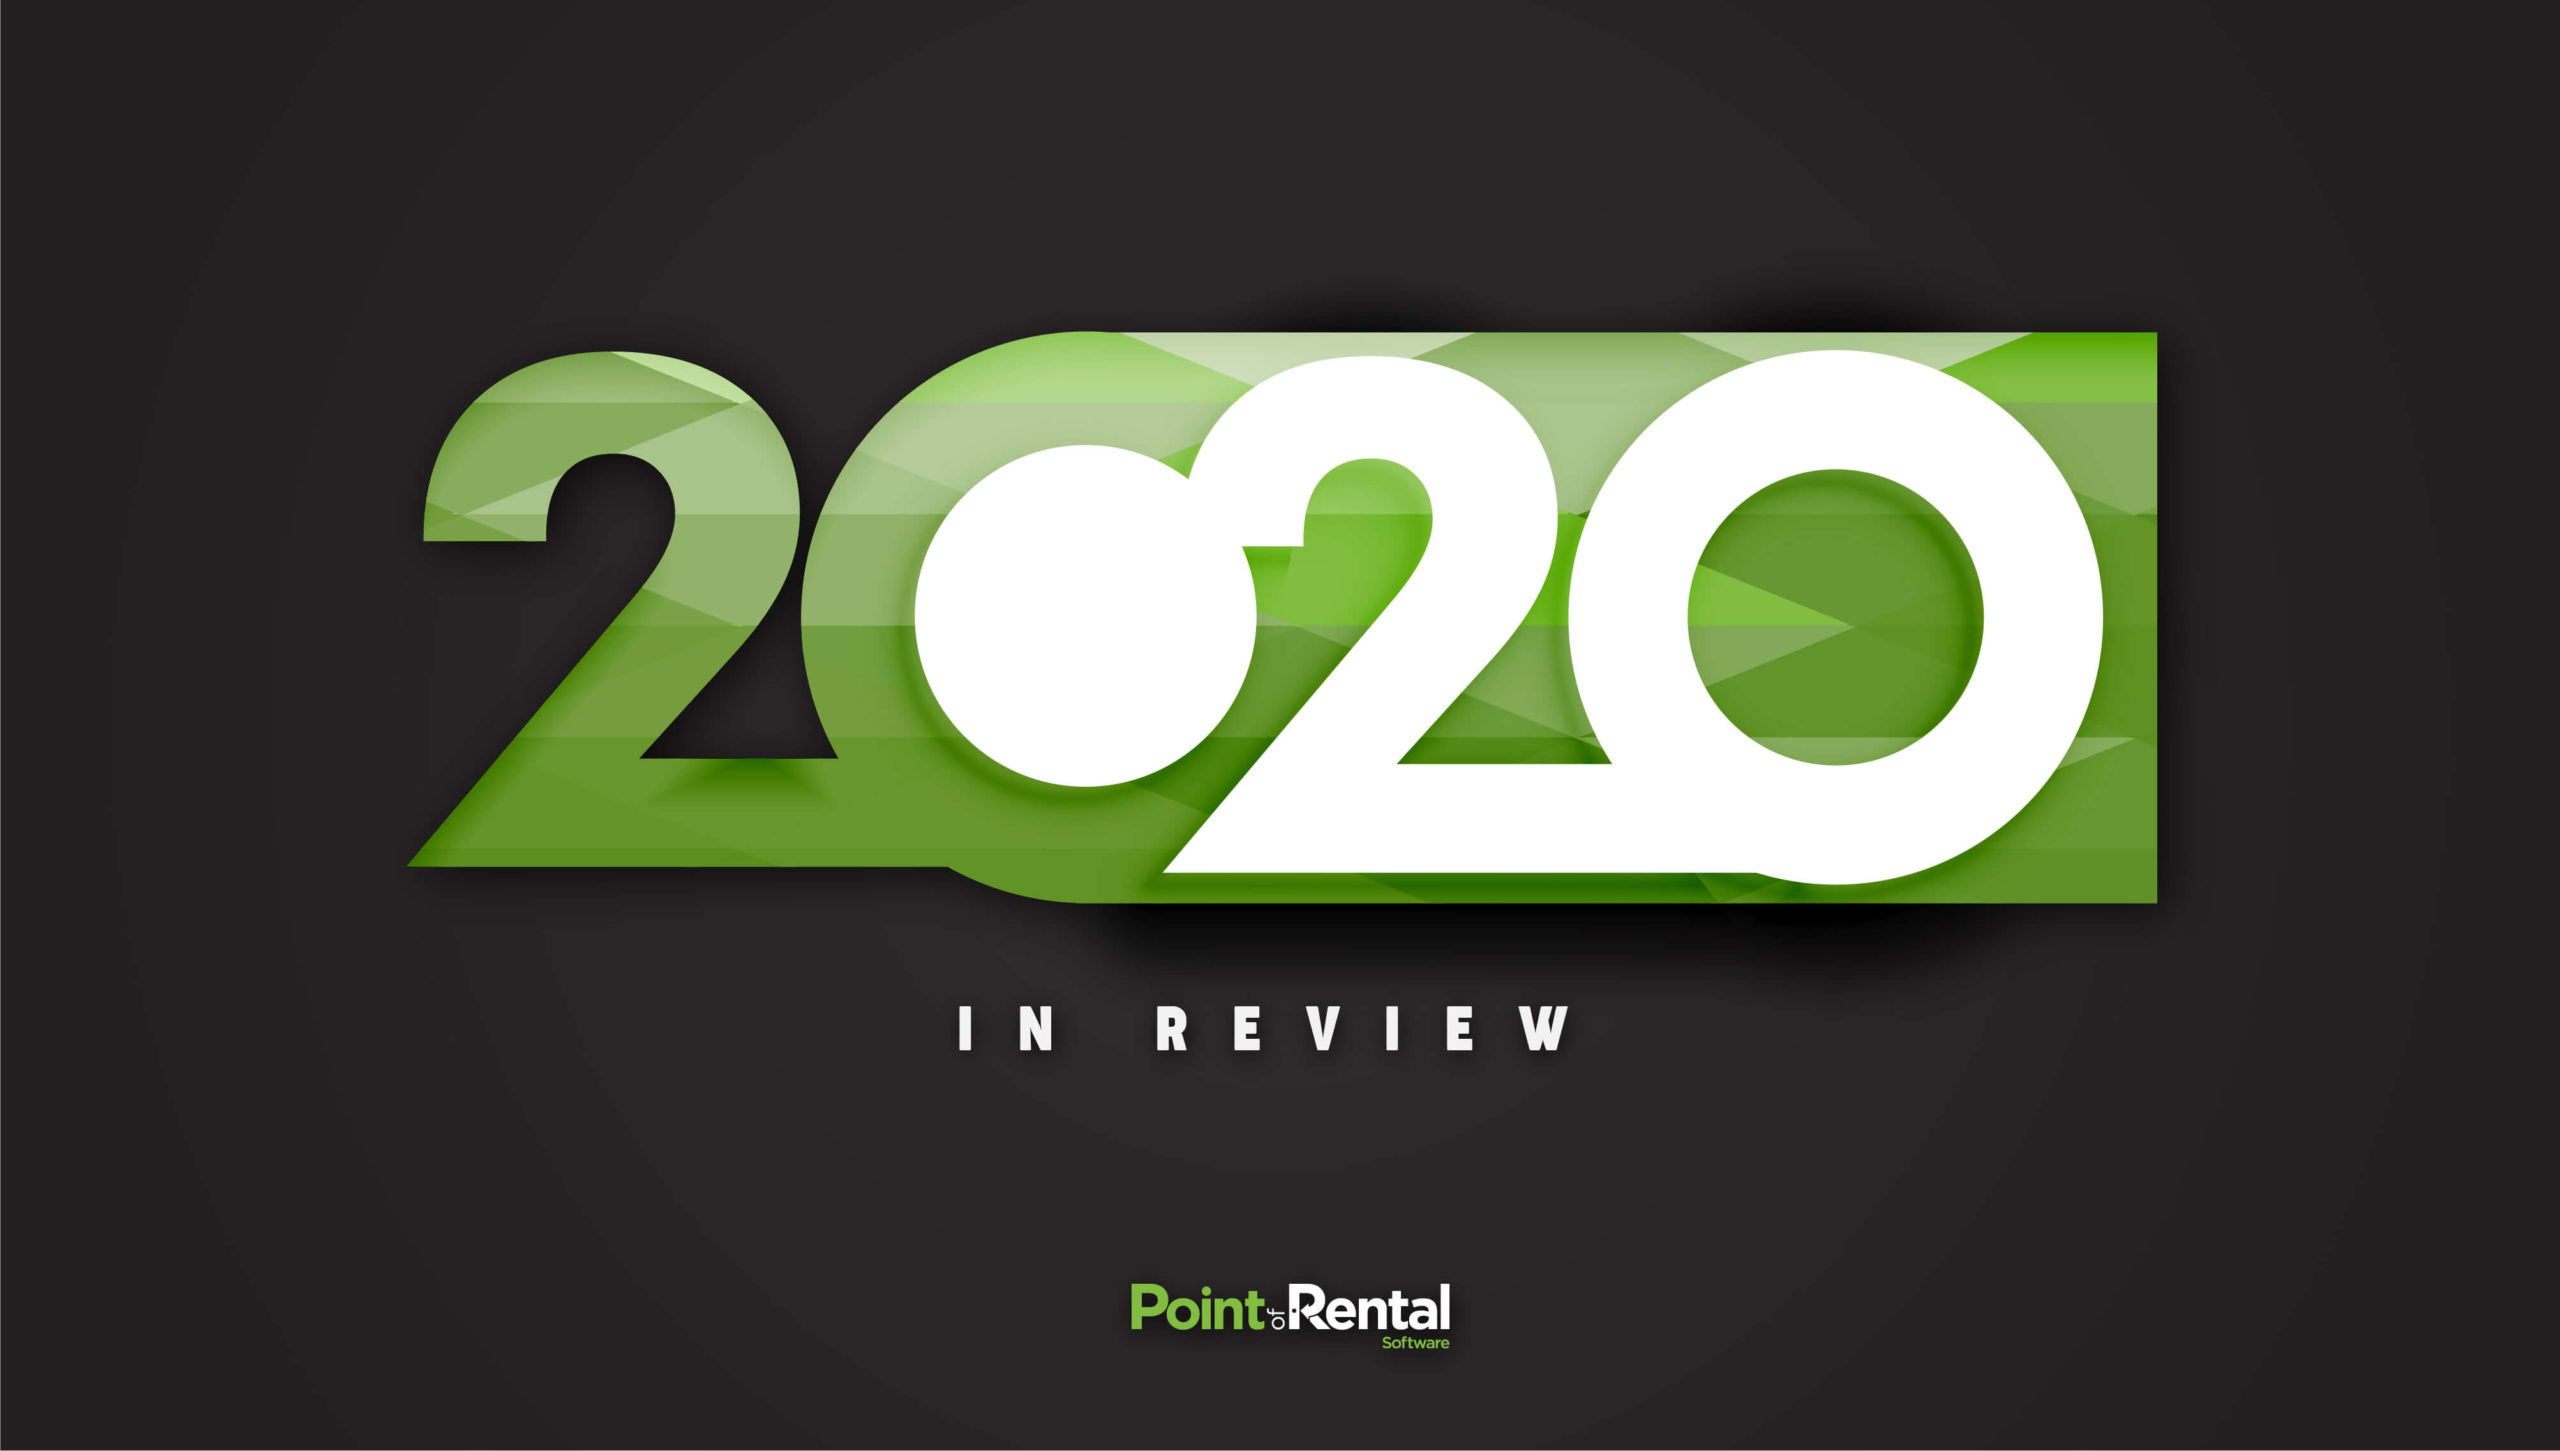 2020 in review: Point of Rental